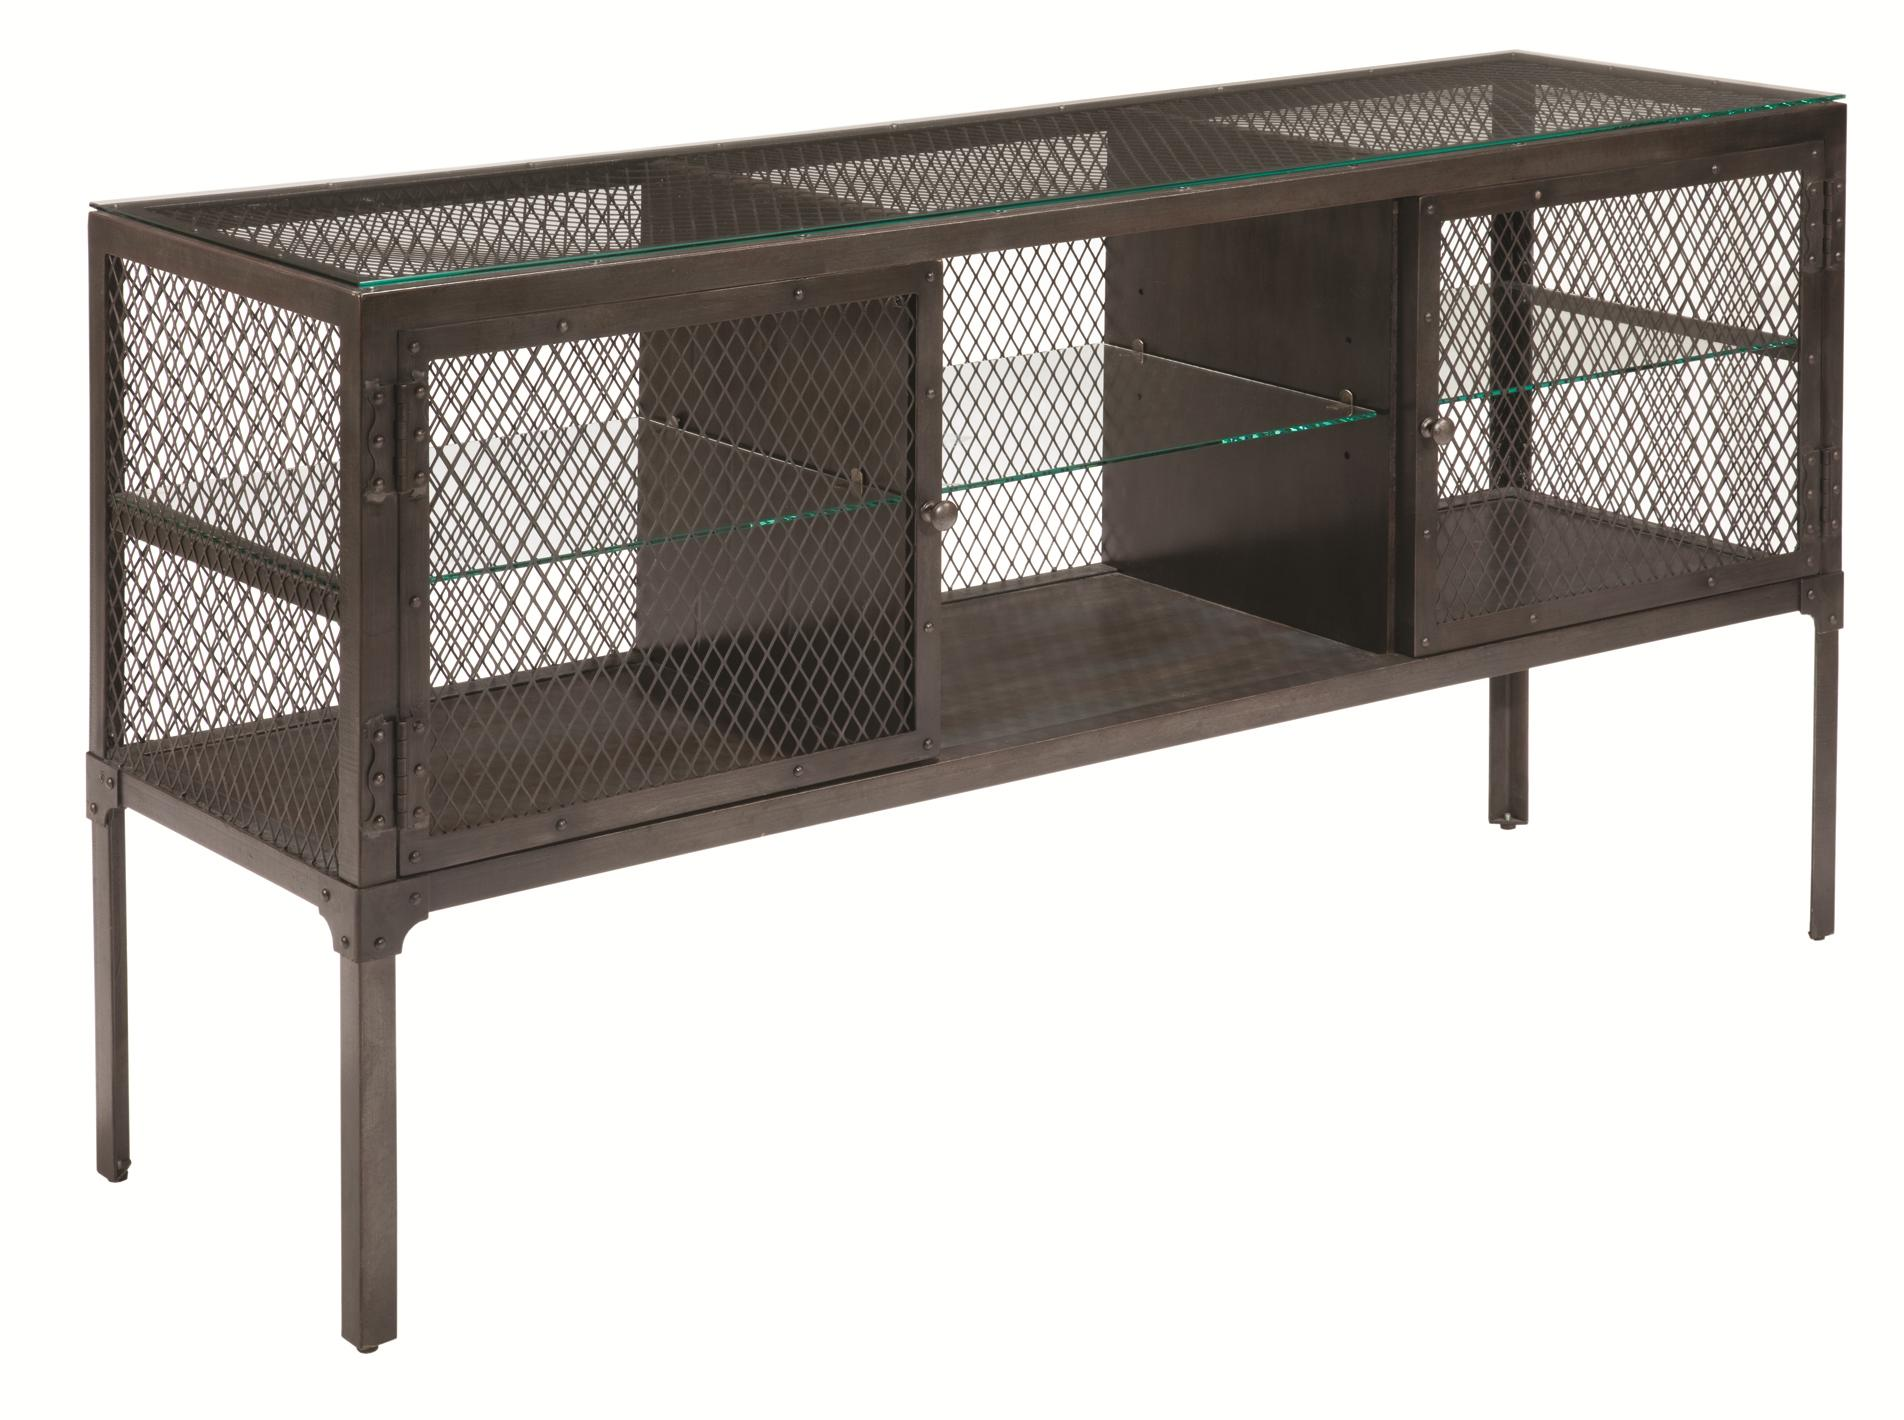 Treasures Express Industrial Sofa Table With Glass Shelves And Top By Kincaid Furniture